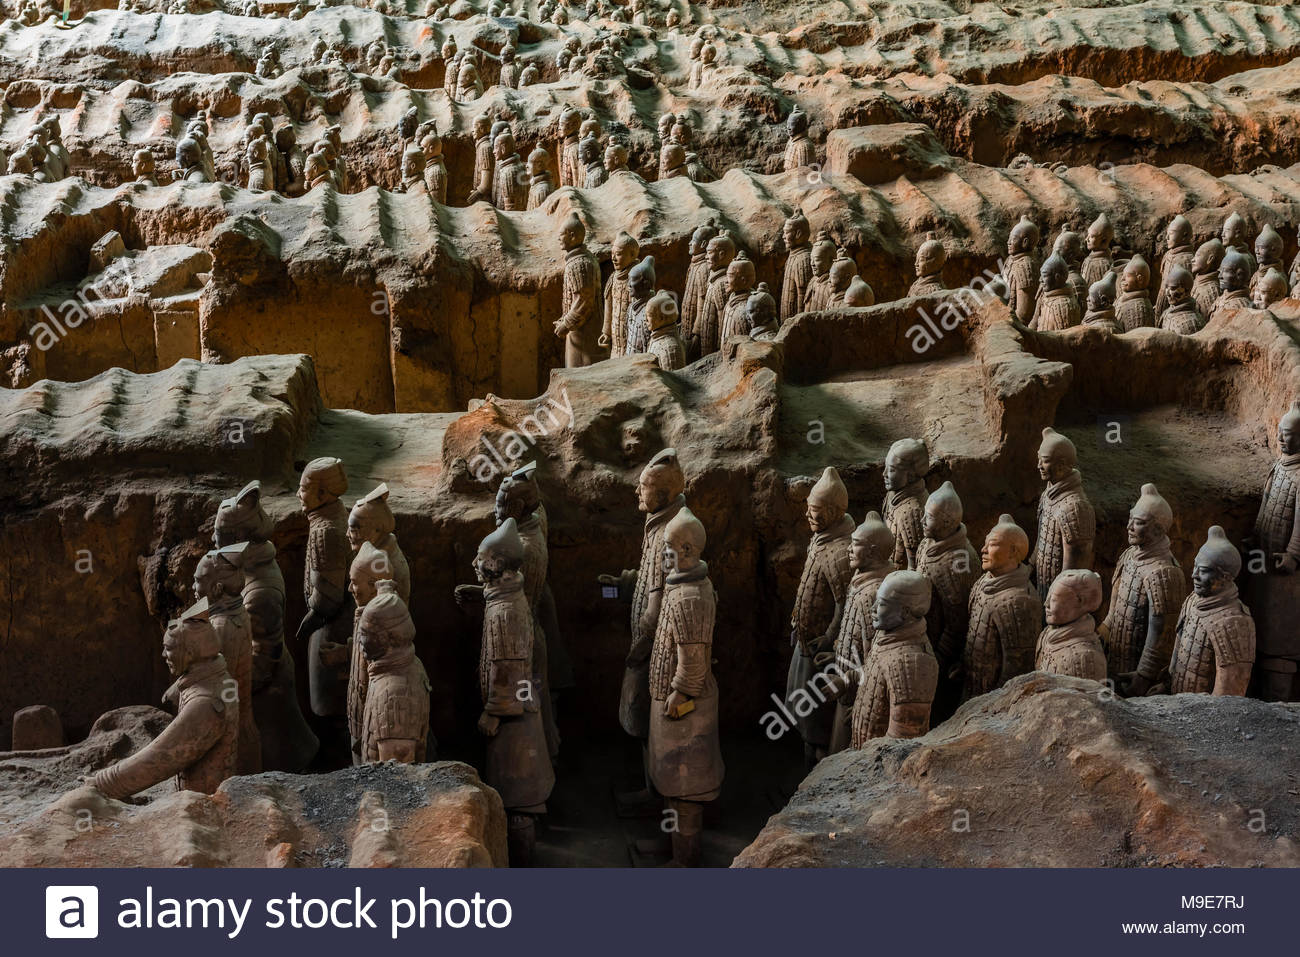 Pit 1, the excavation site of the Terracotta Army of Emperor Qin Shi Huang, the first emperor of China. The Army was buried with the Emperor in about - Stock Image